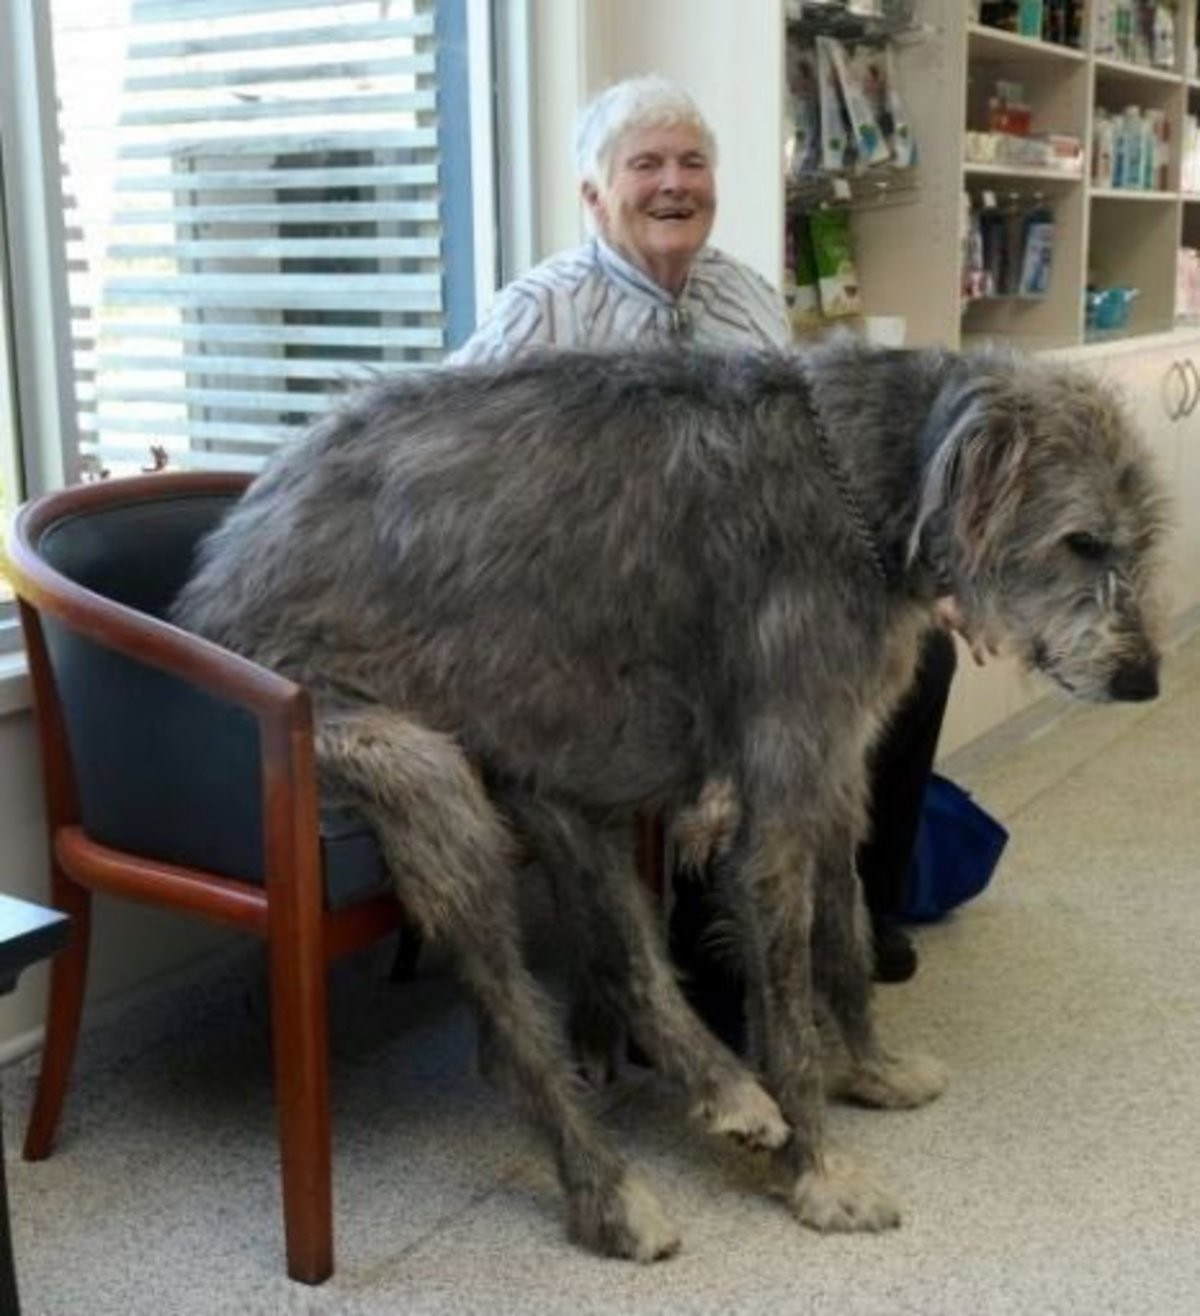 Big doggo. Makes me miss my wolfhounds a ton.. Old man and old boi together